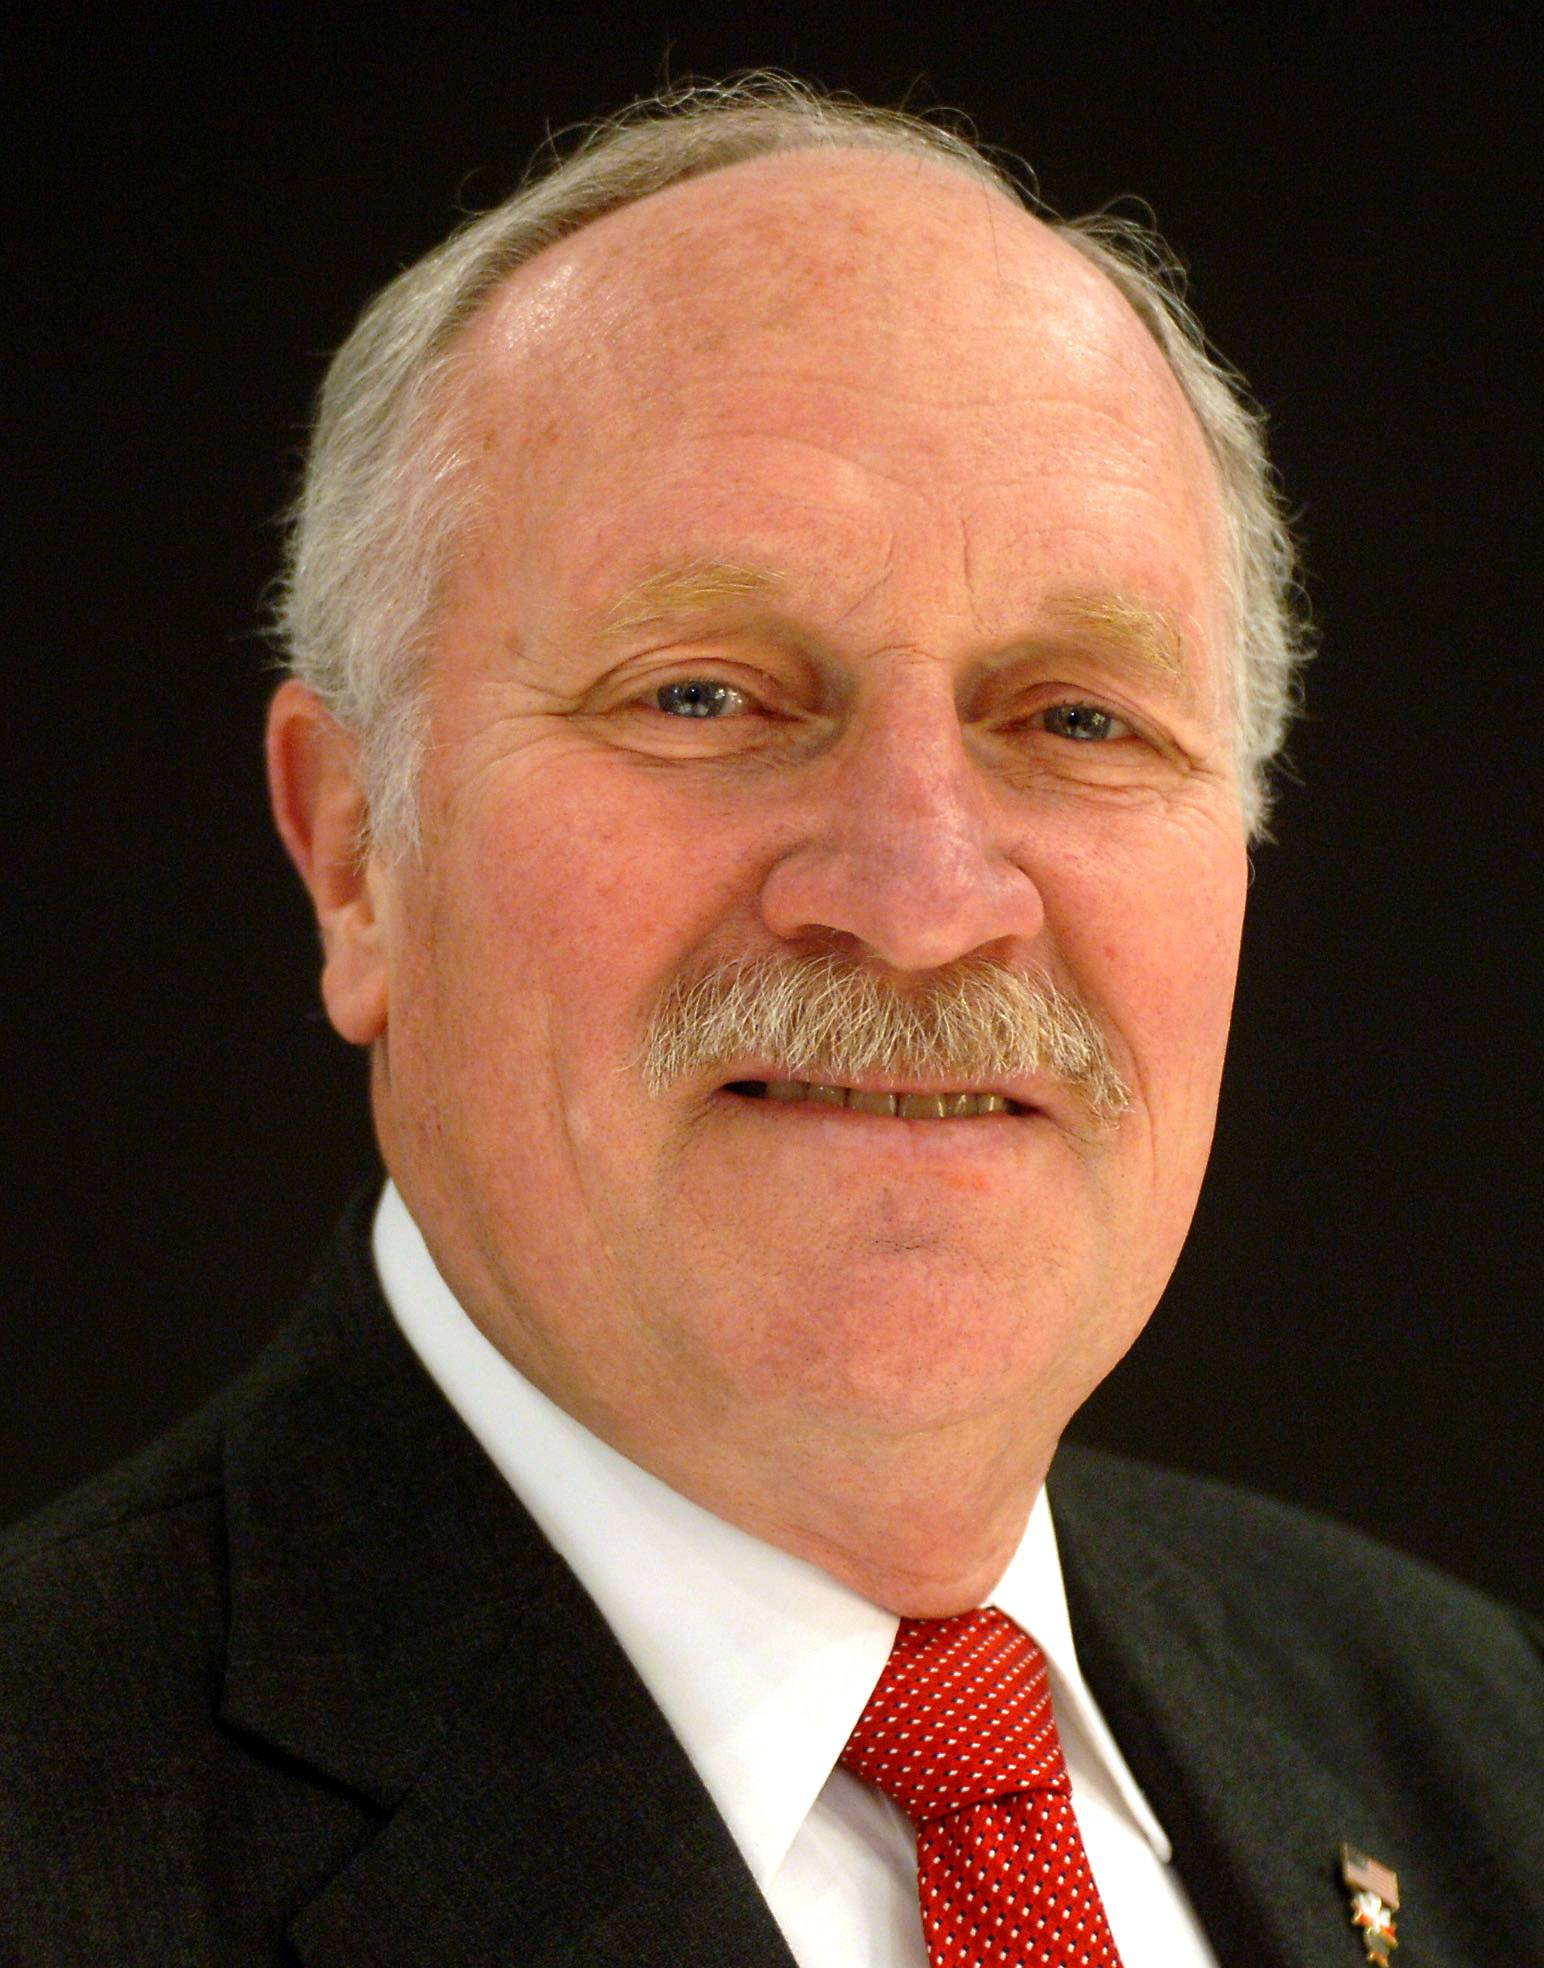 Wally Frasier, running for Mundelein Mayor (4-year Term)